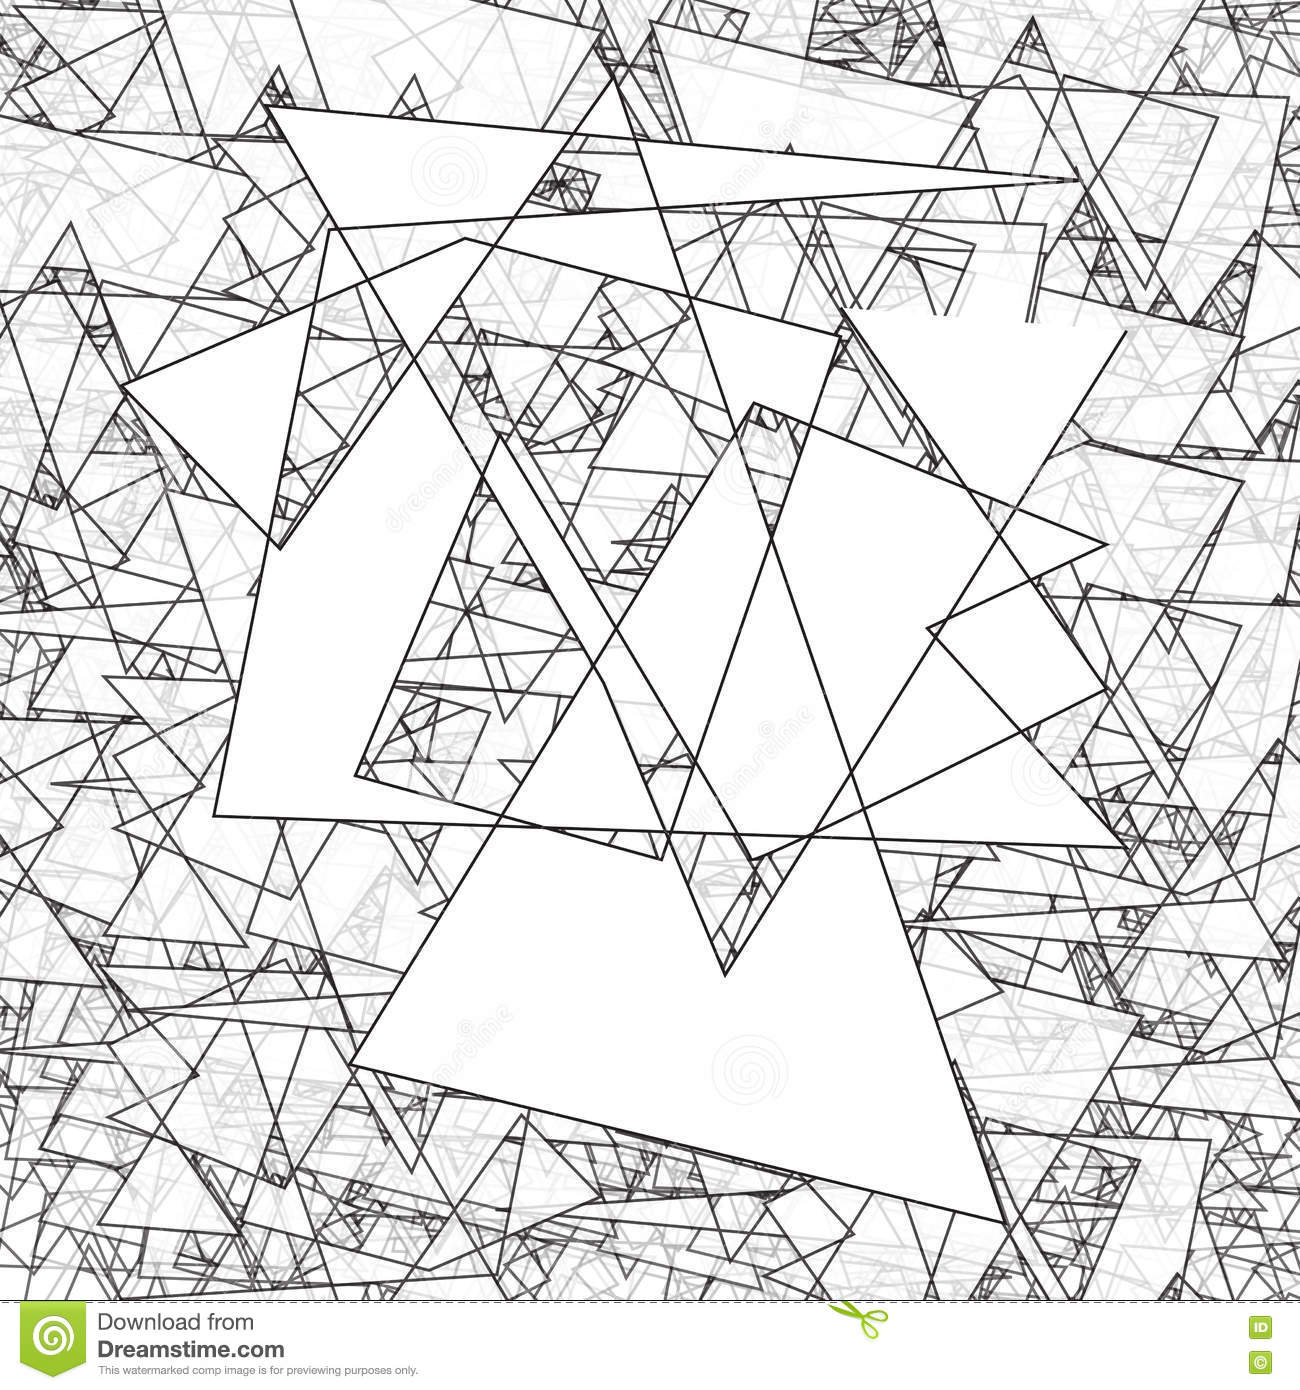 Geometric Simple Black And White Minimalistic Pattern